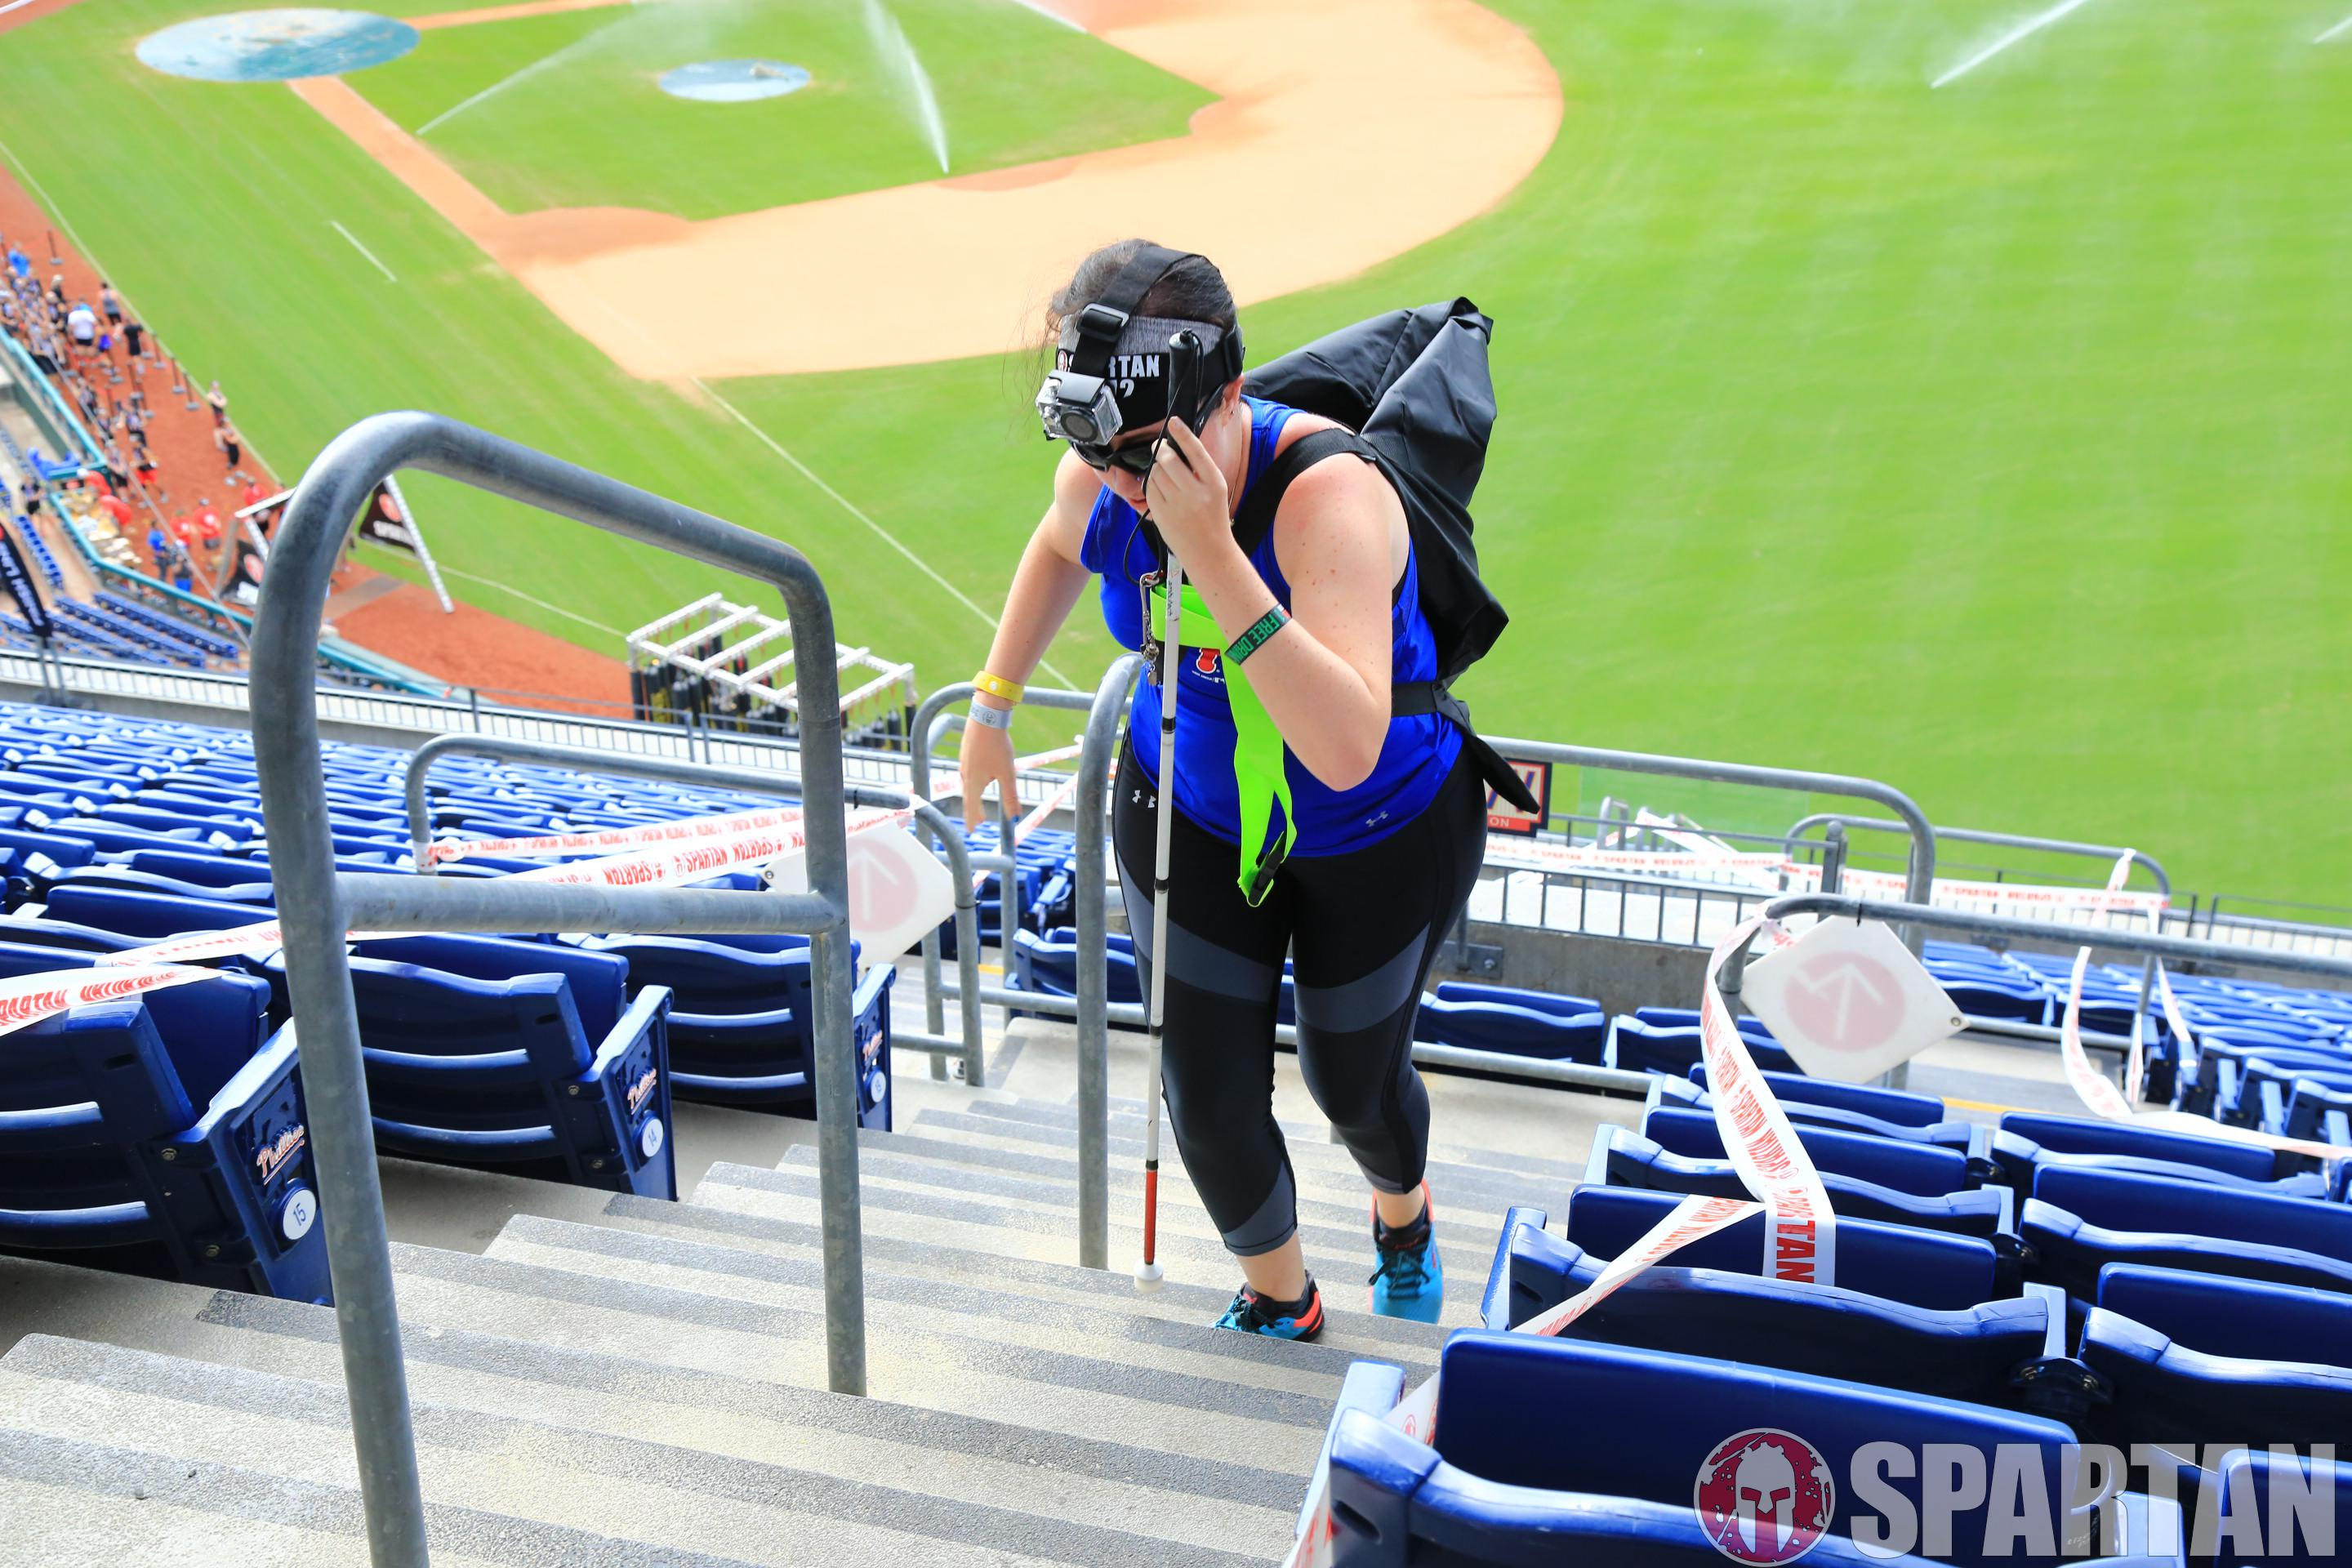 Jess competing in the Spartan at Citizens Bank Park with a modification for the sandbag carry.